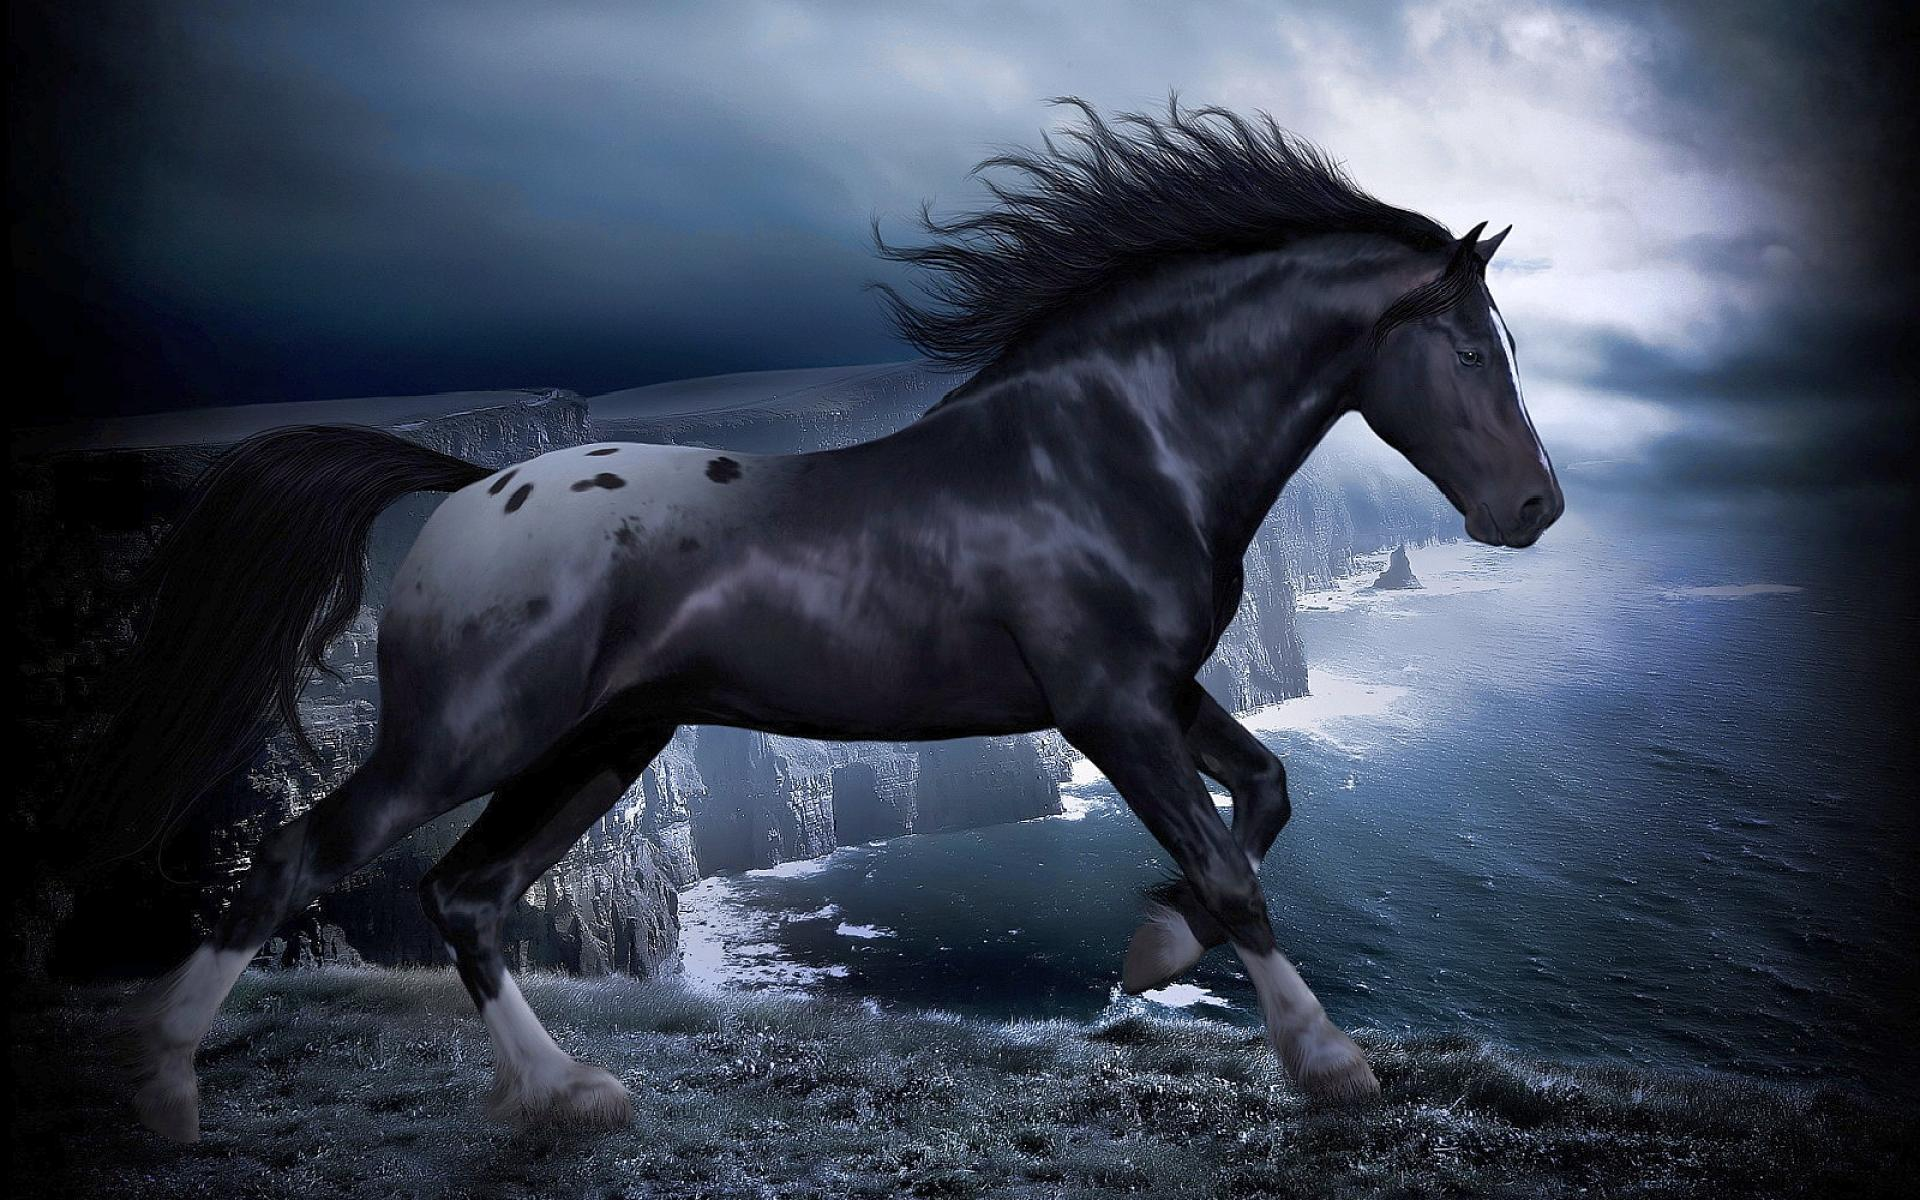 black-horse-picture-cool-2041-background-wallpapers.jpg